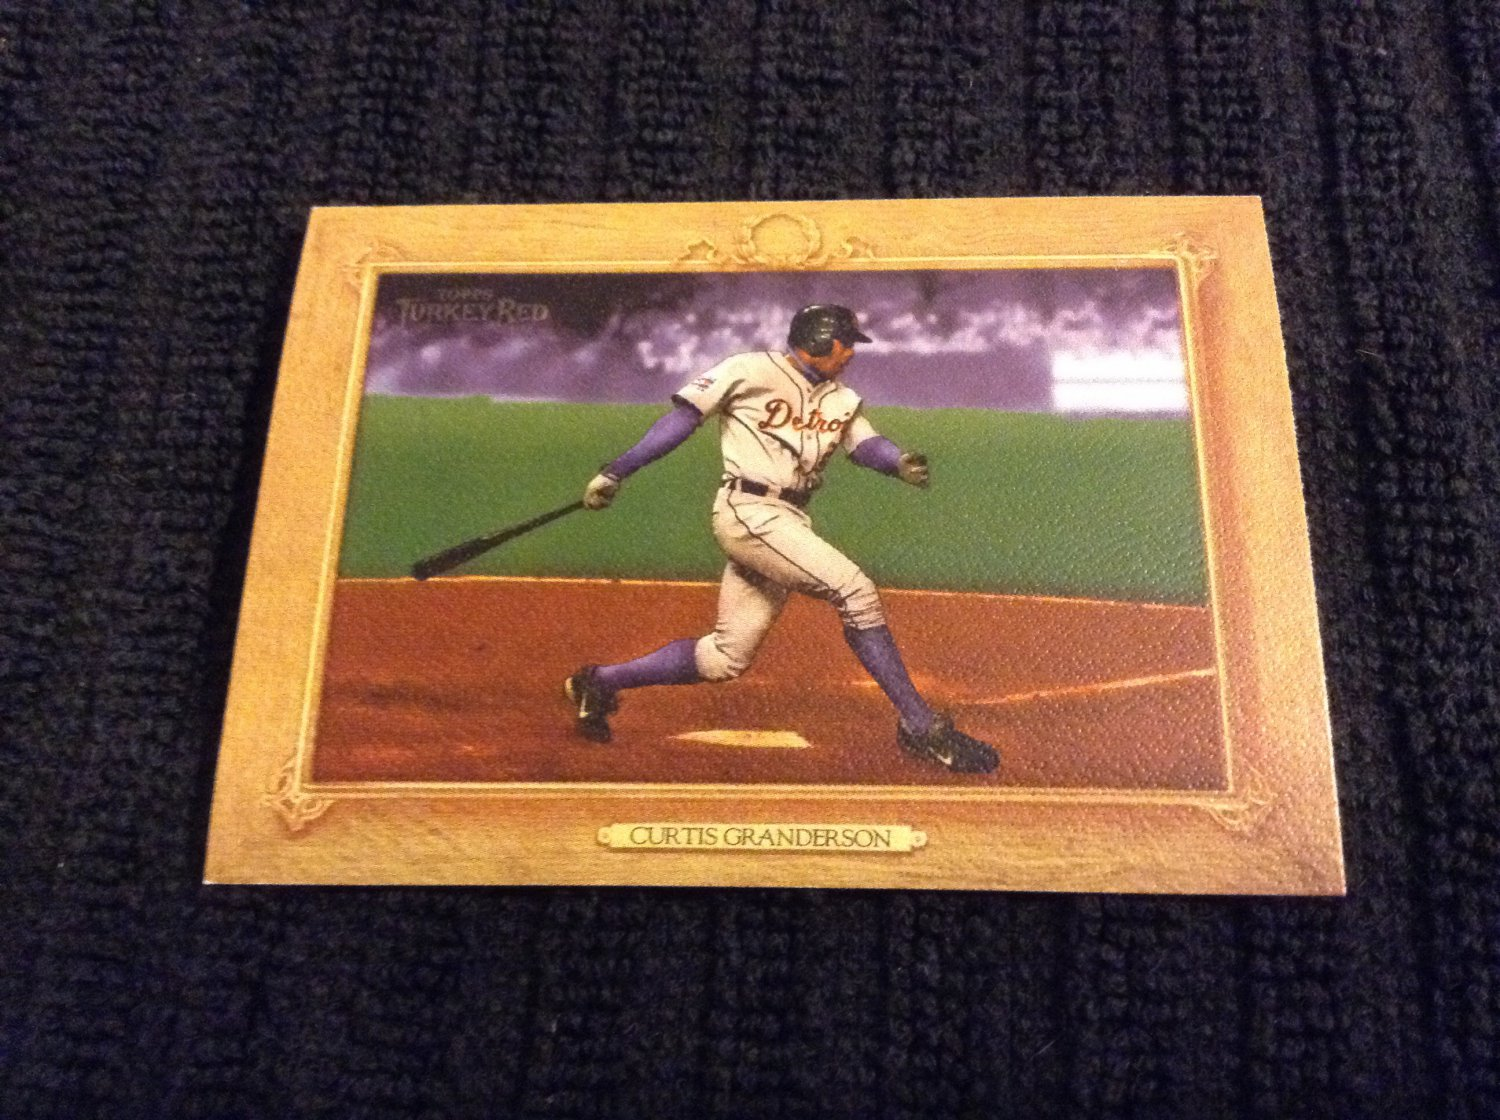 2007 Topps Turkey Red - Curtis Granderson (79)